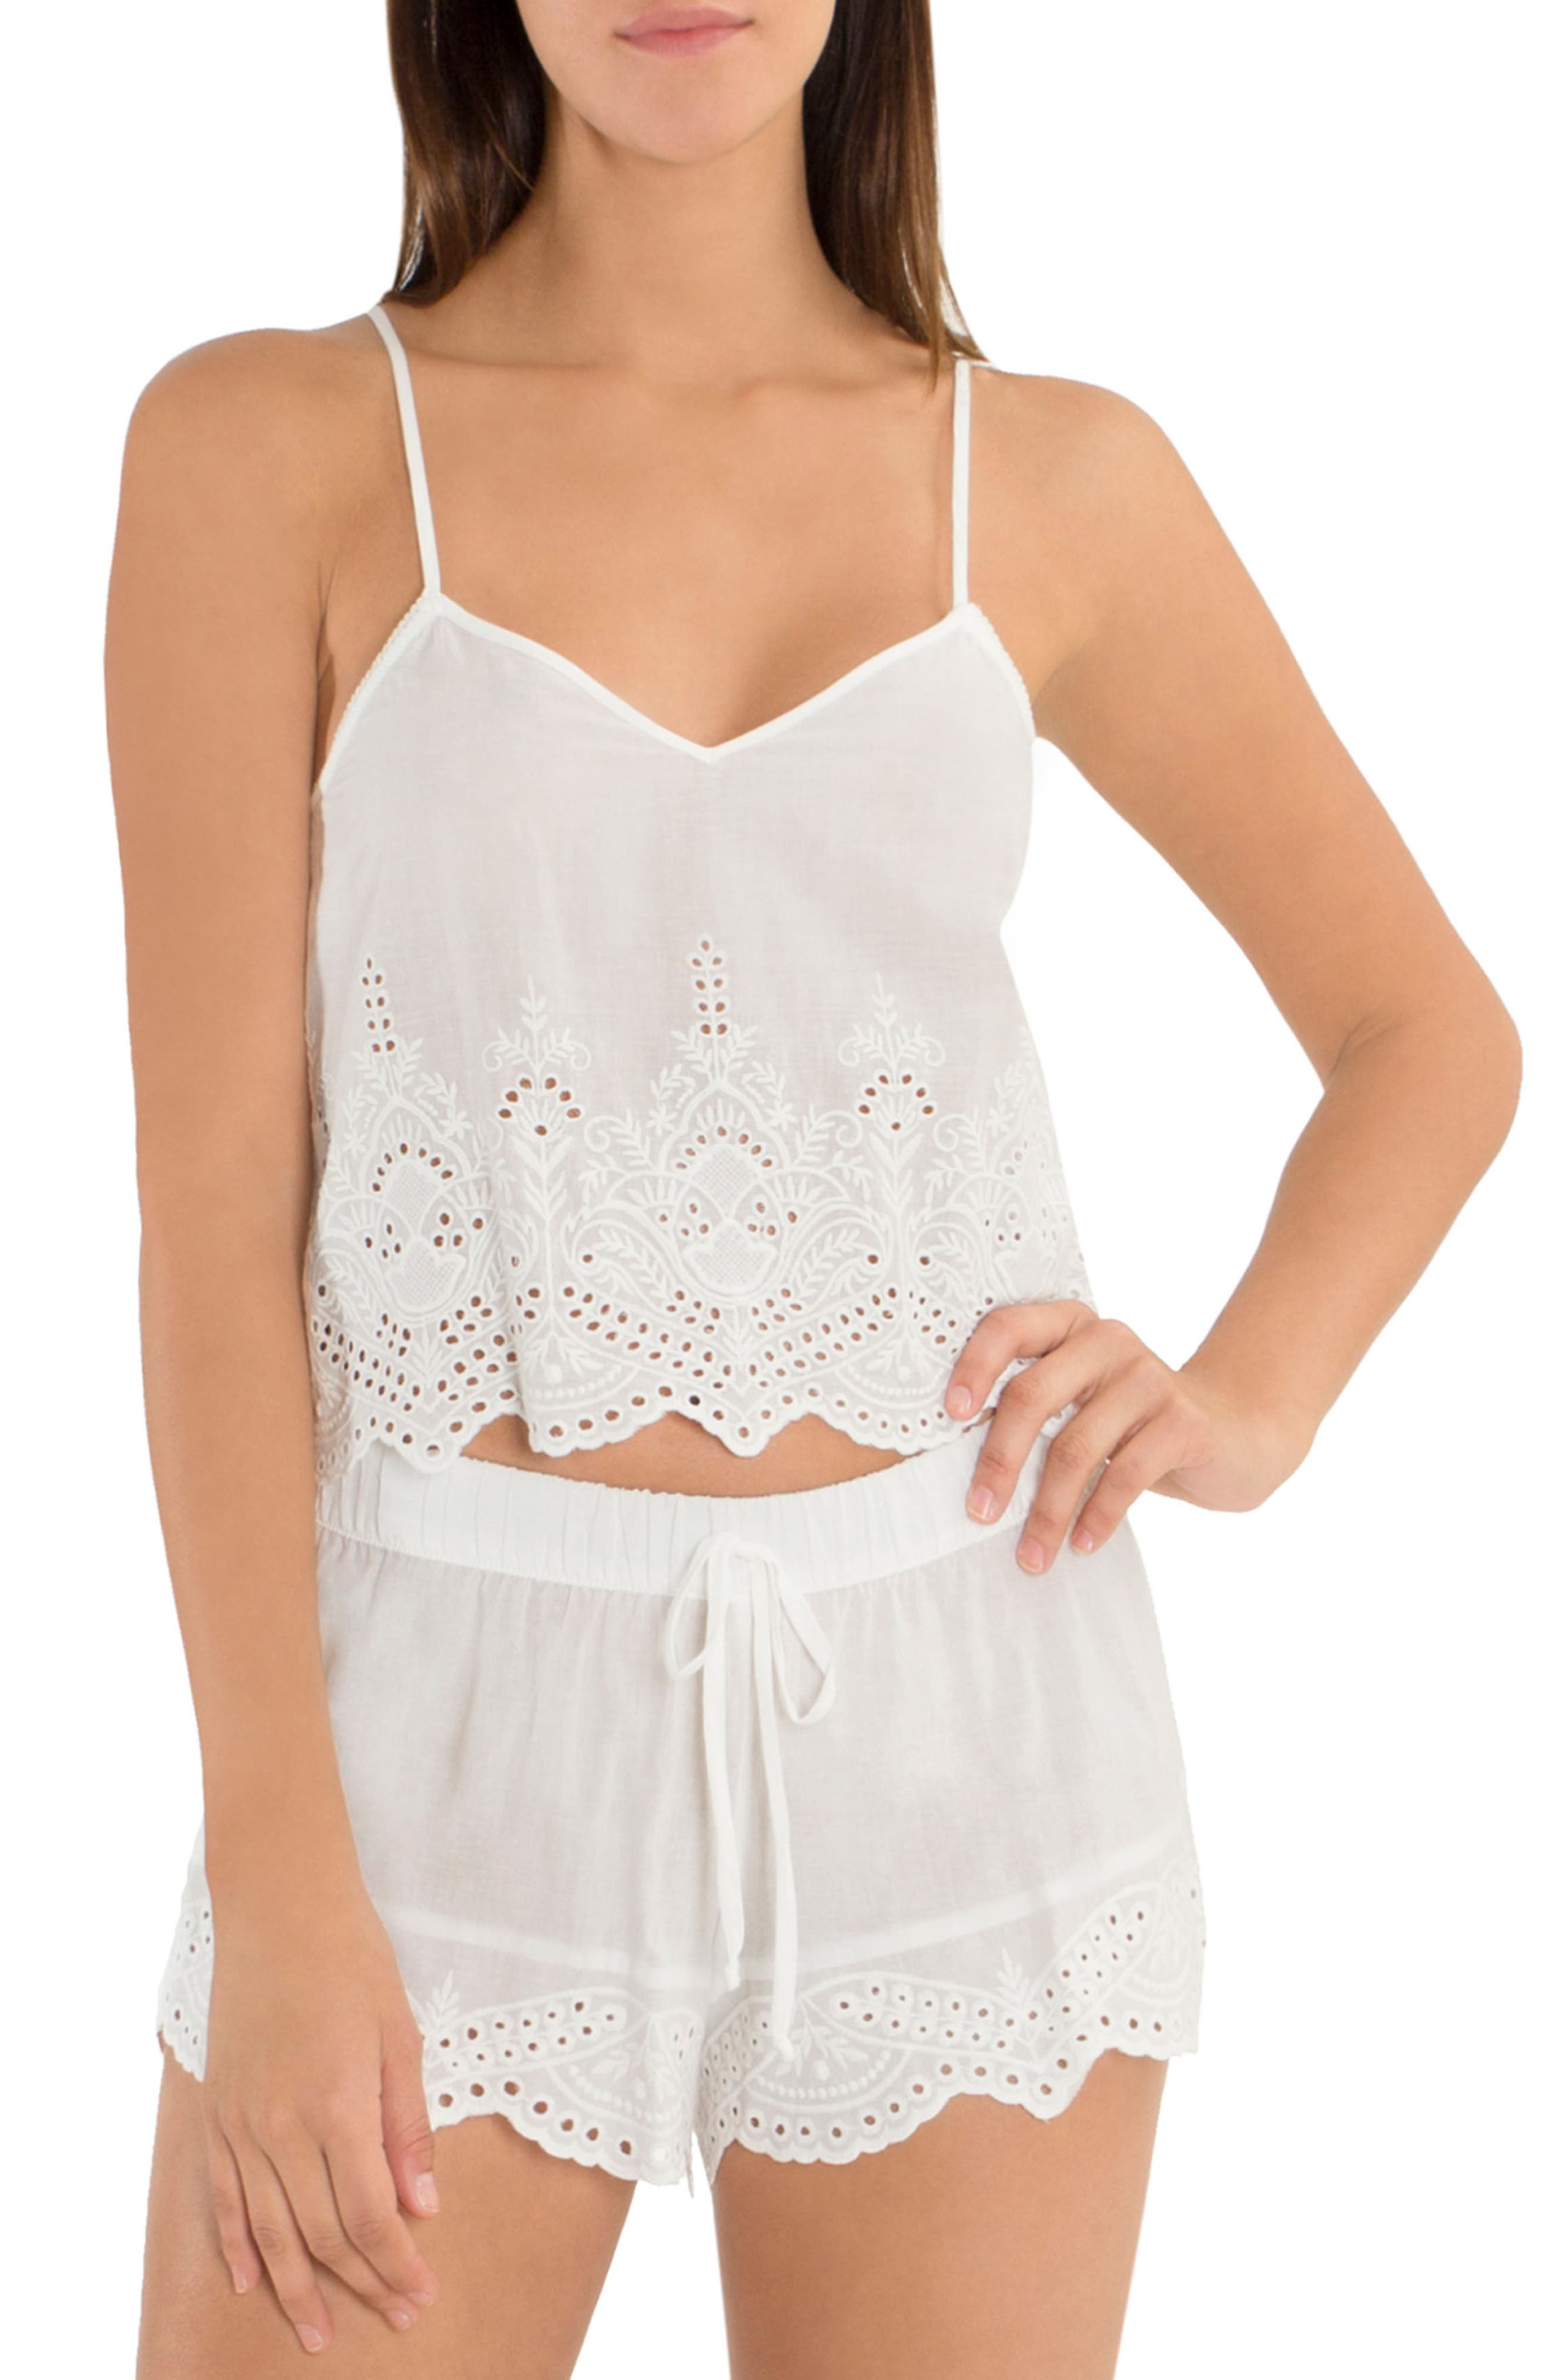 In Bloom by Jonquil Eyelet Cotton Short Pajamas